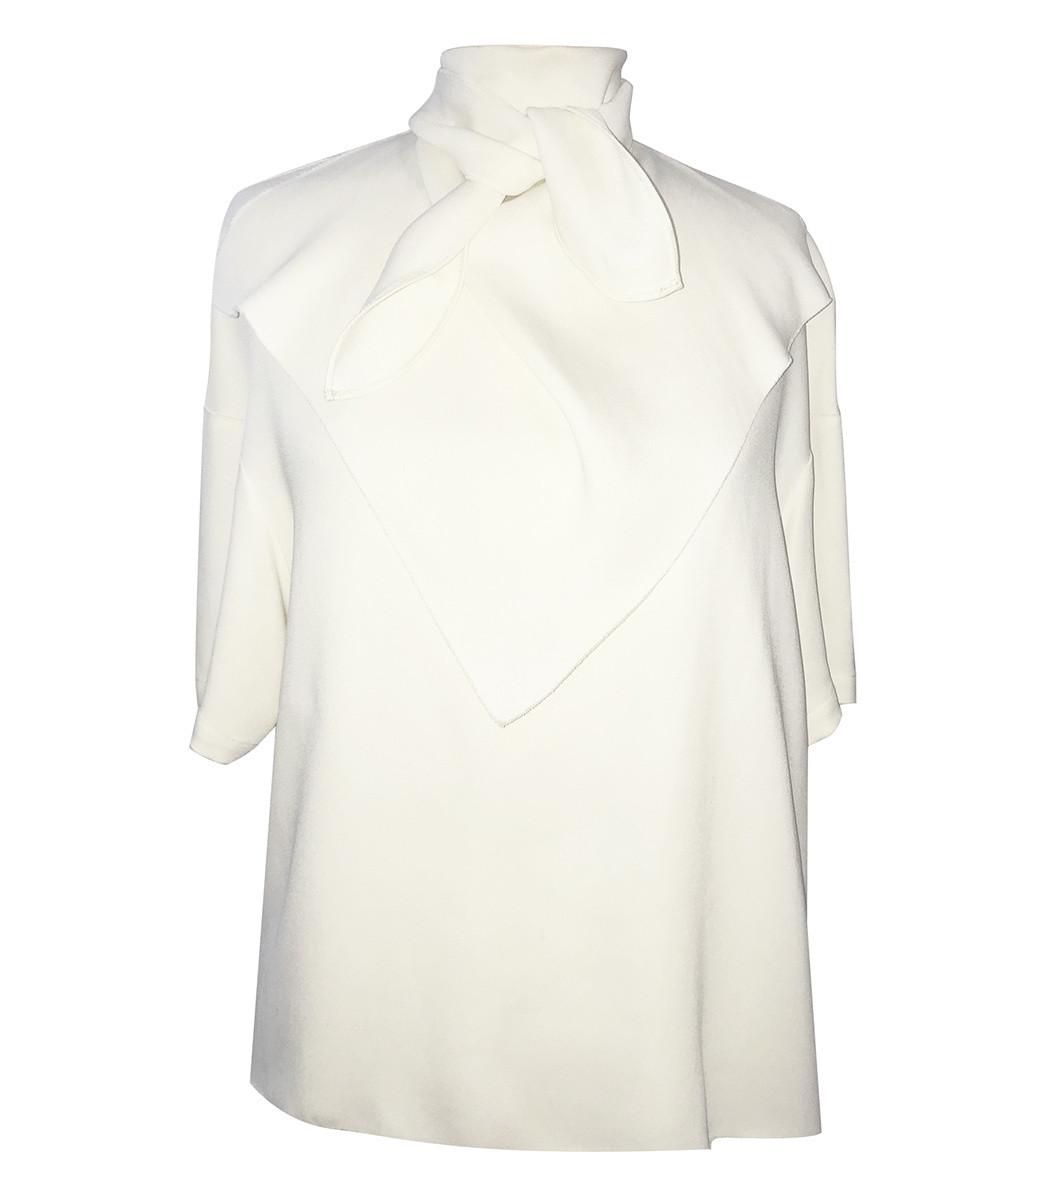 MARISA WITKIN Bandana Top in Ivory